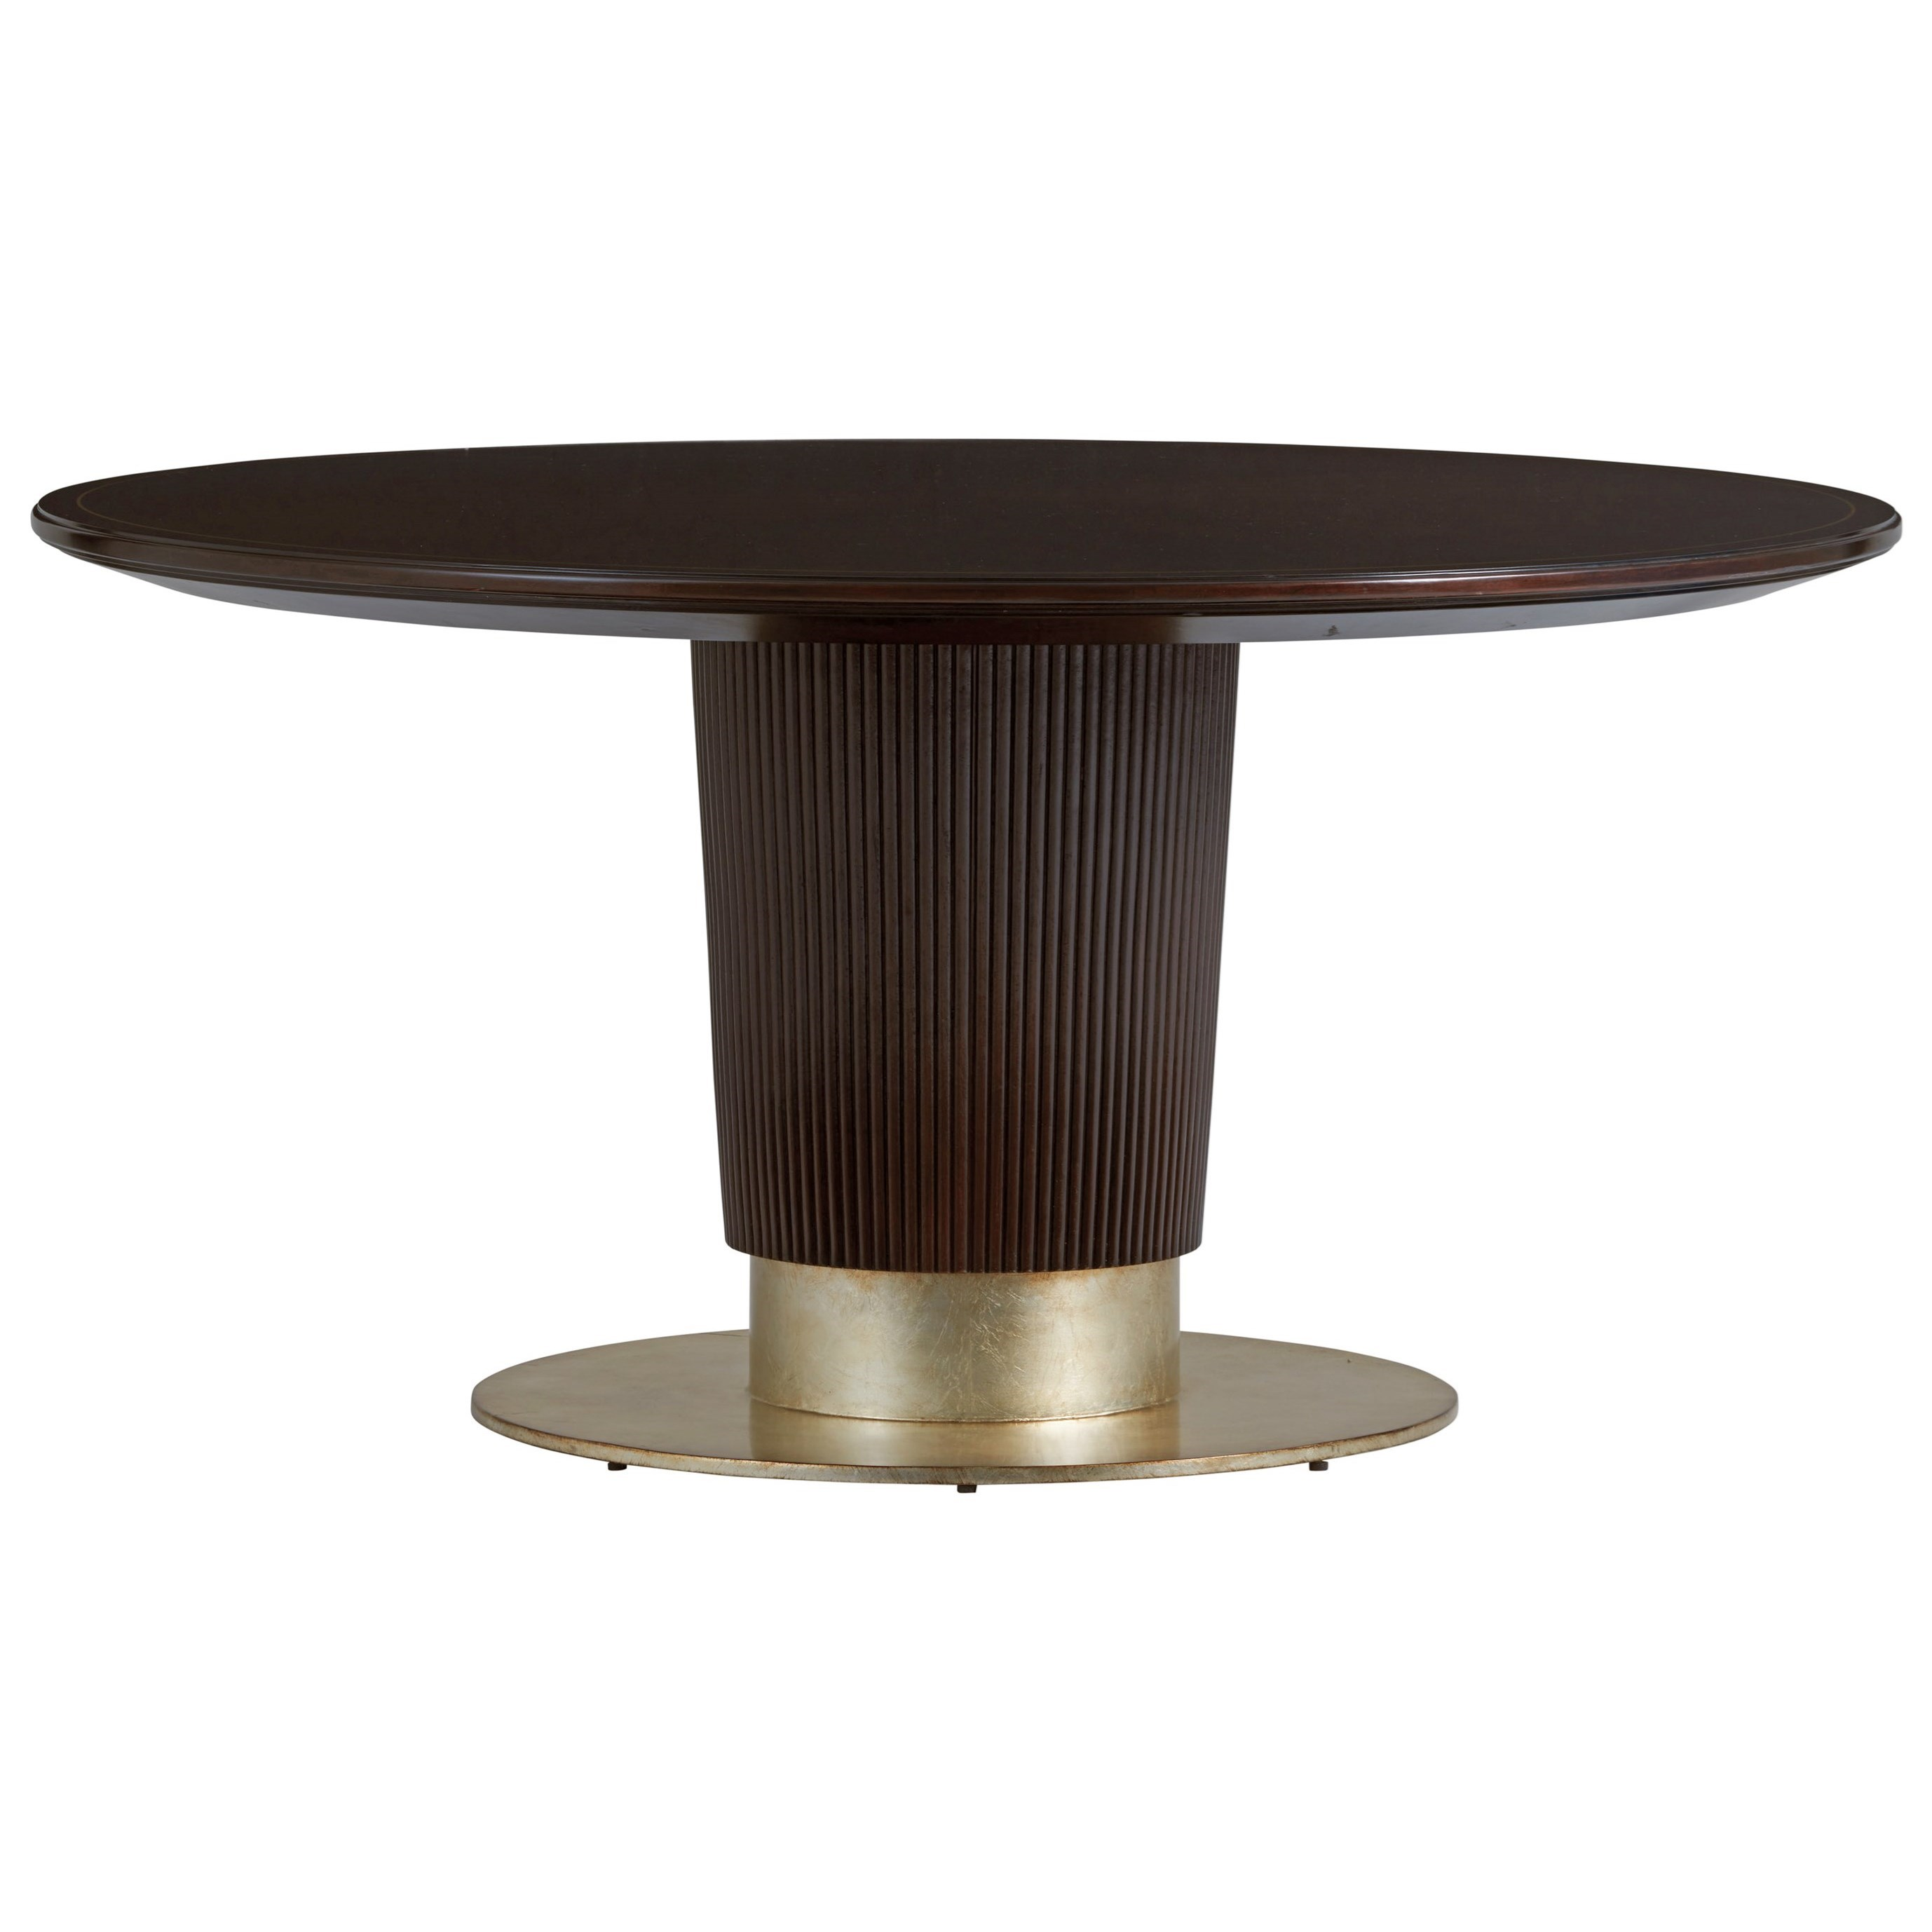 Carlyle Waldorf Round Dining Table by Lexington at Baer's Furniture